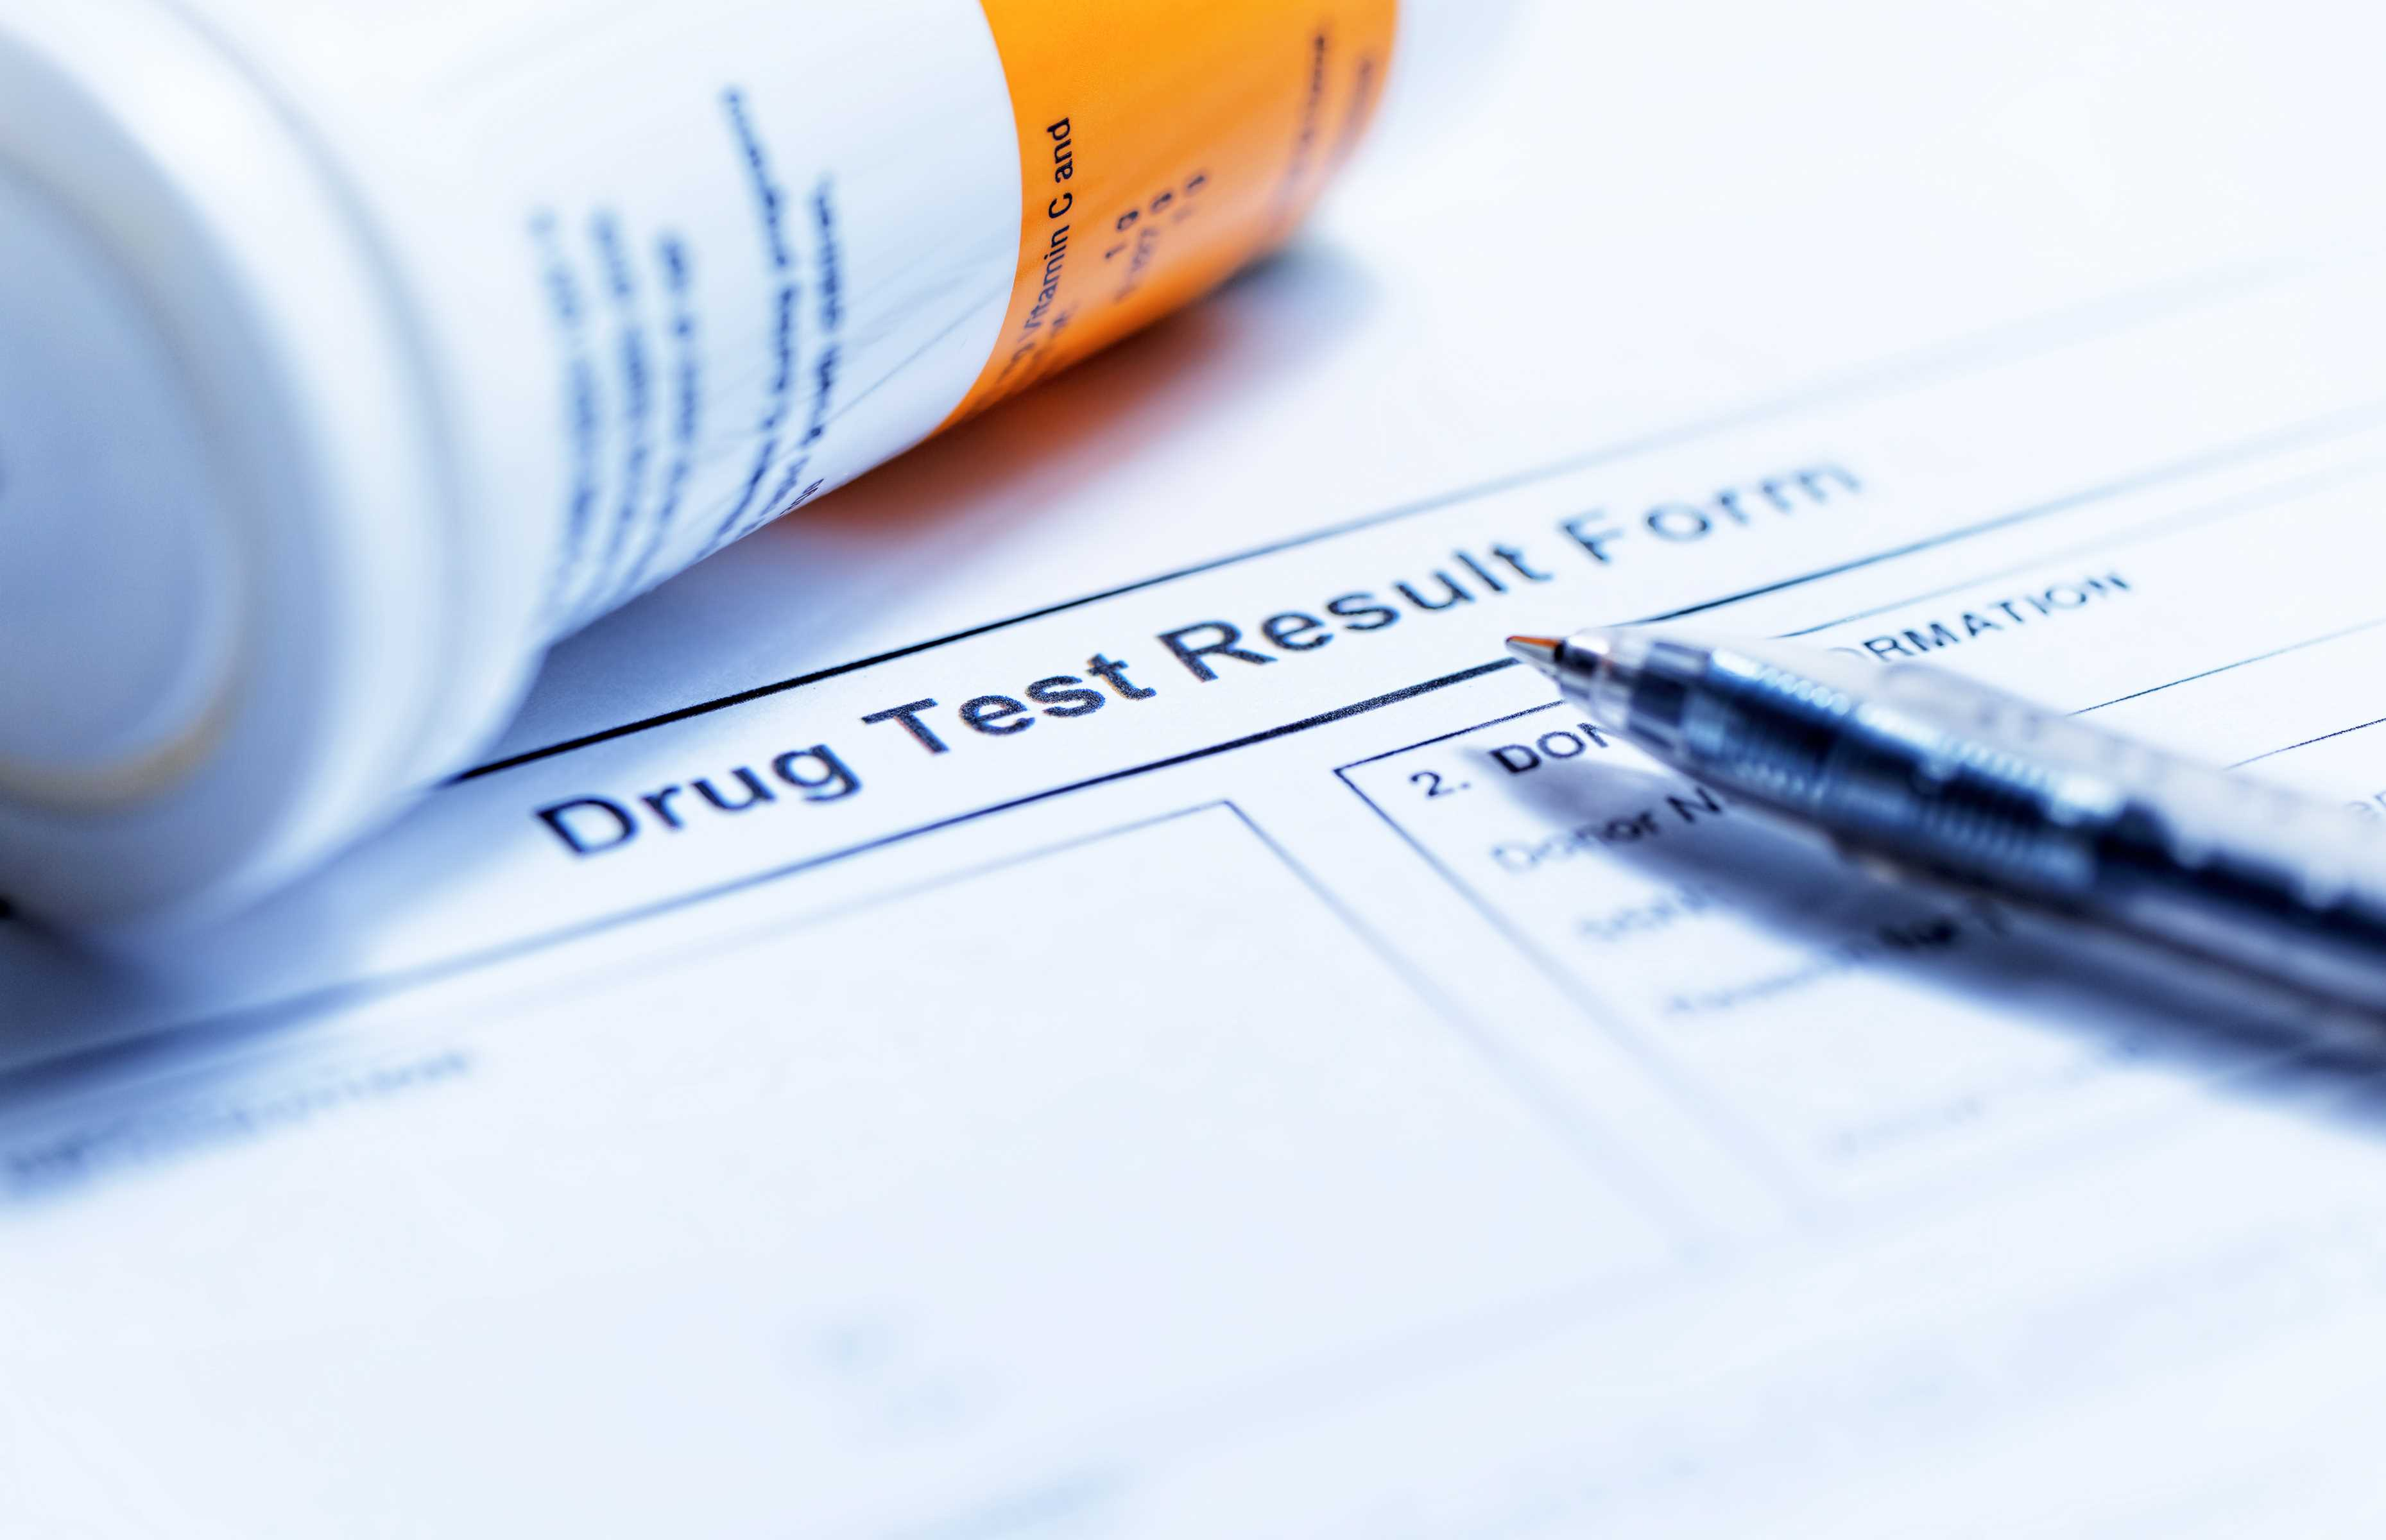 Drug testing program targets transportation industry